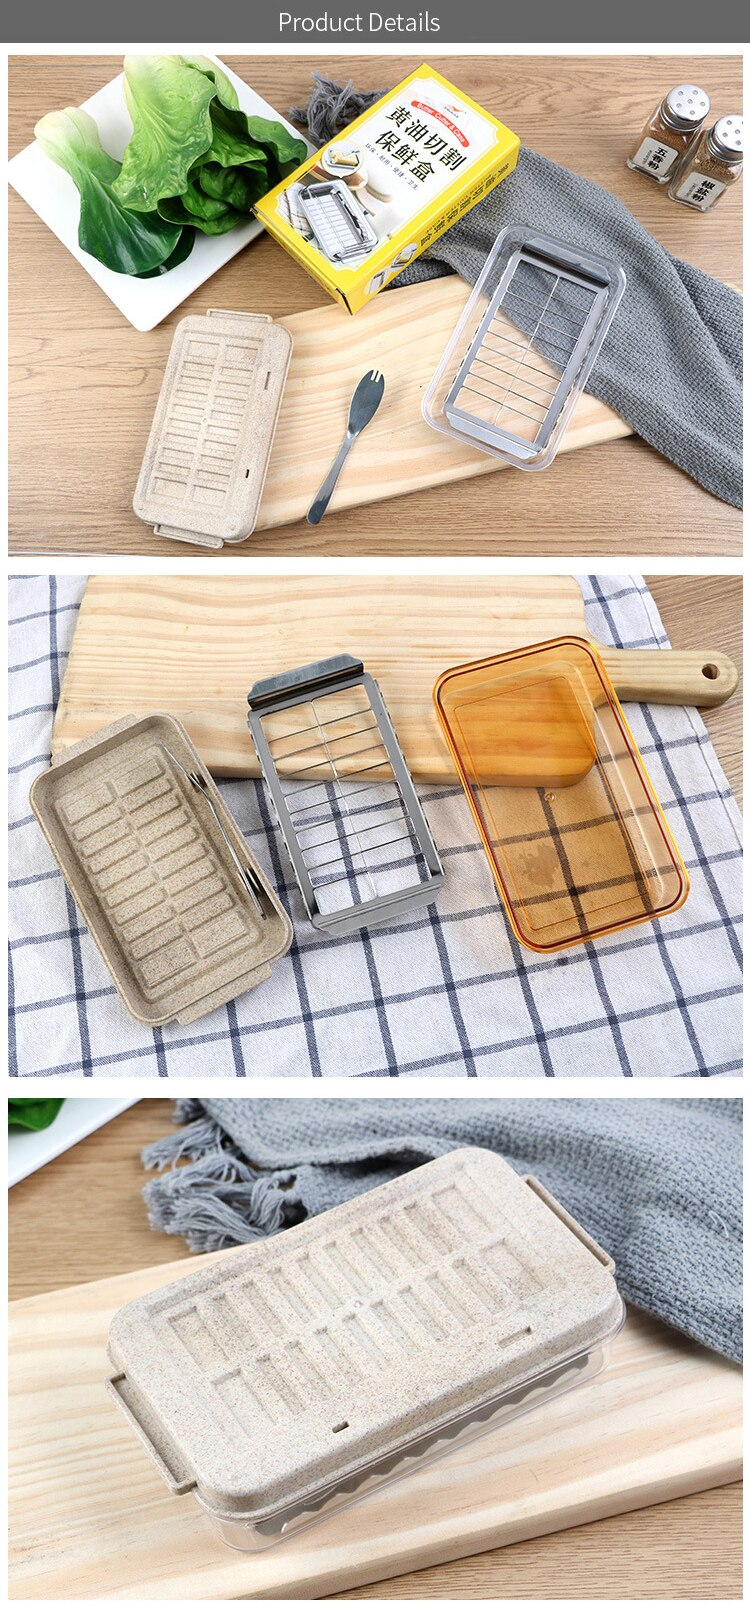 Stainless Butter Cutter & Case Kitchen Butter Box Cutting Food with Knife & Lid Container Sealing Storage Dish Cheese Keeper